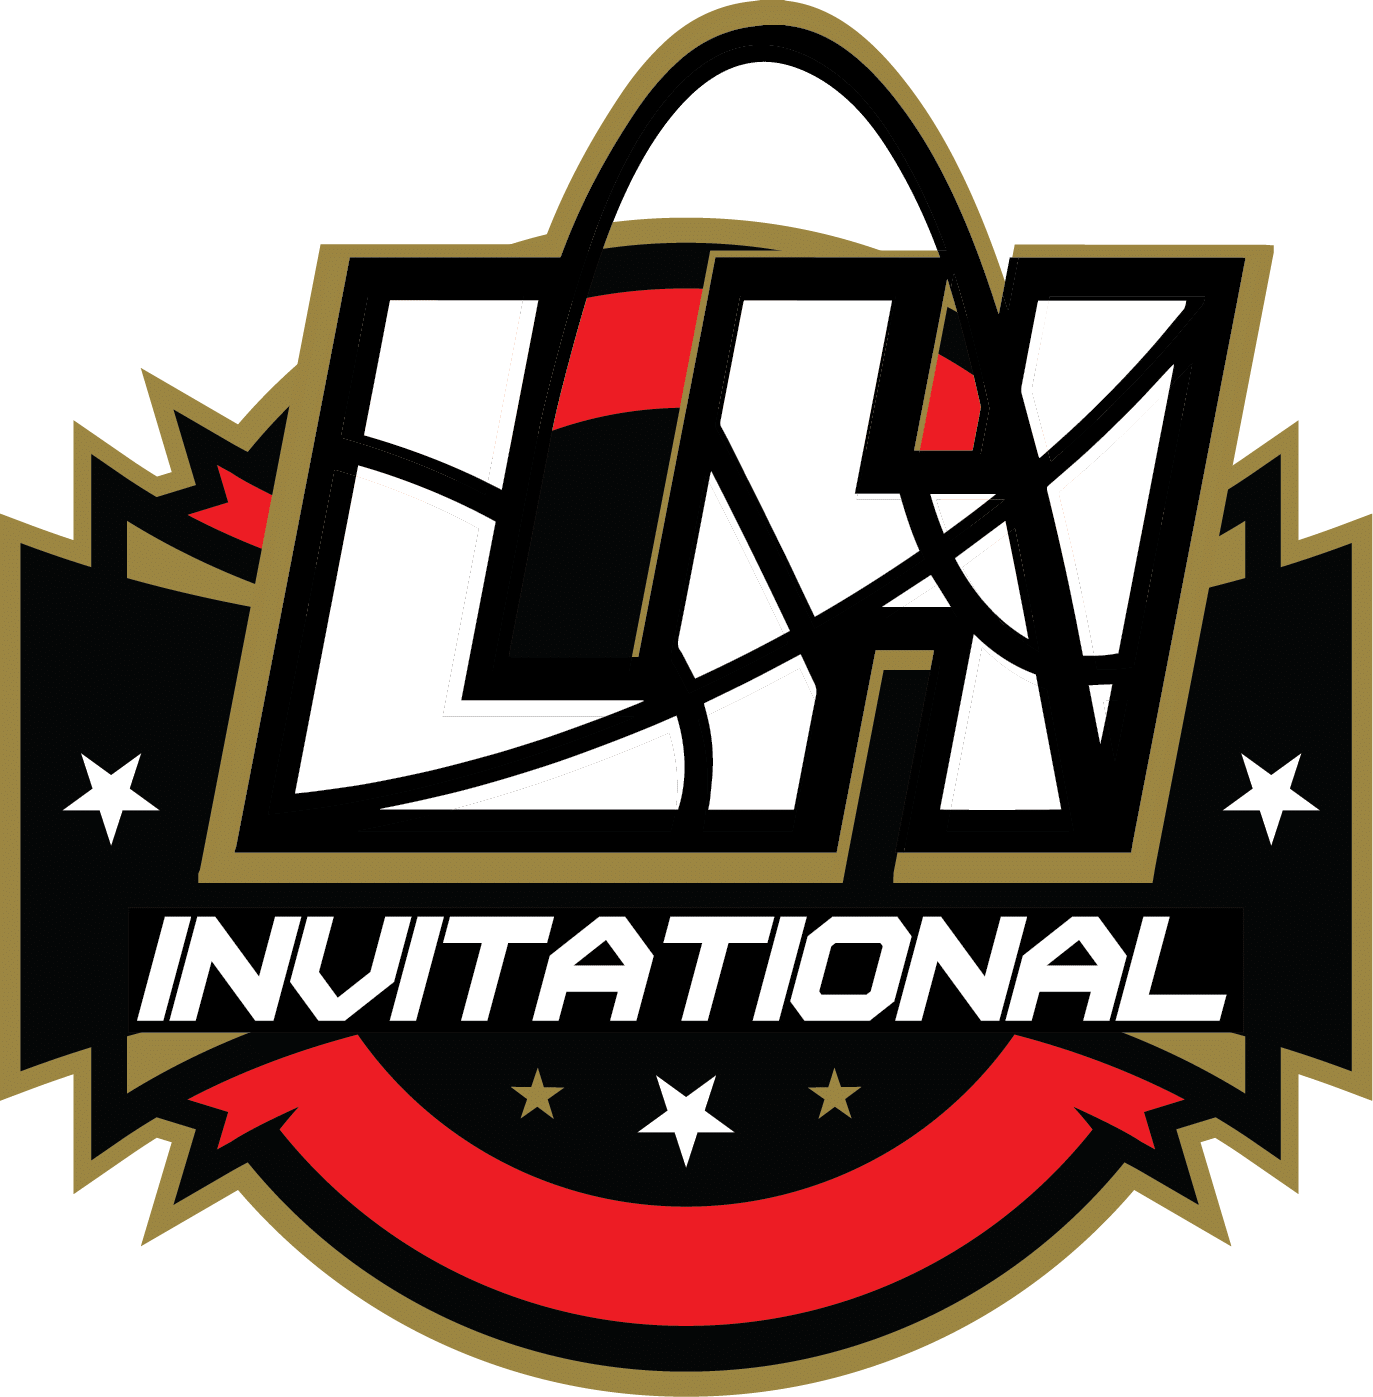 The larry hughes invitational. Medal clipart tournament